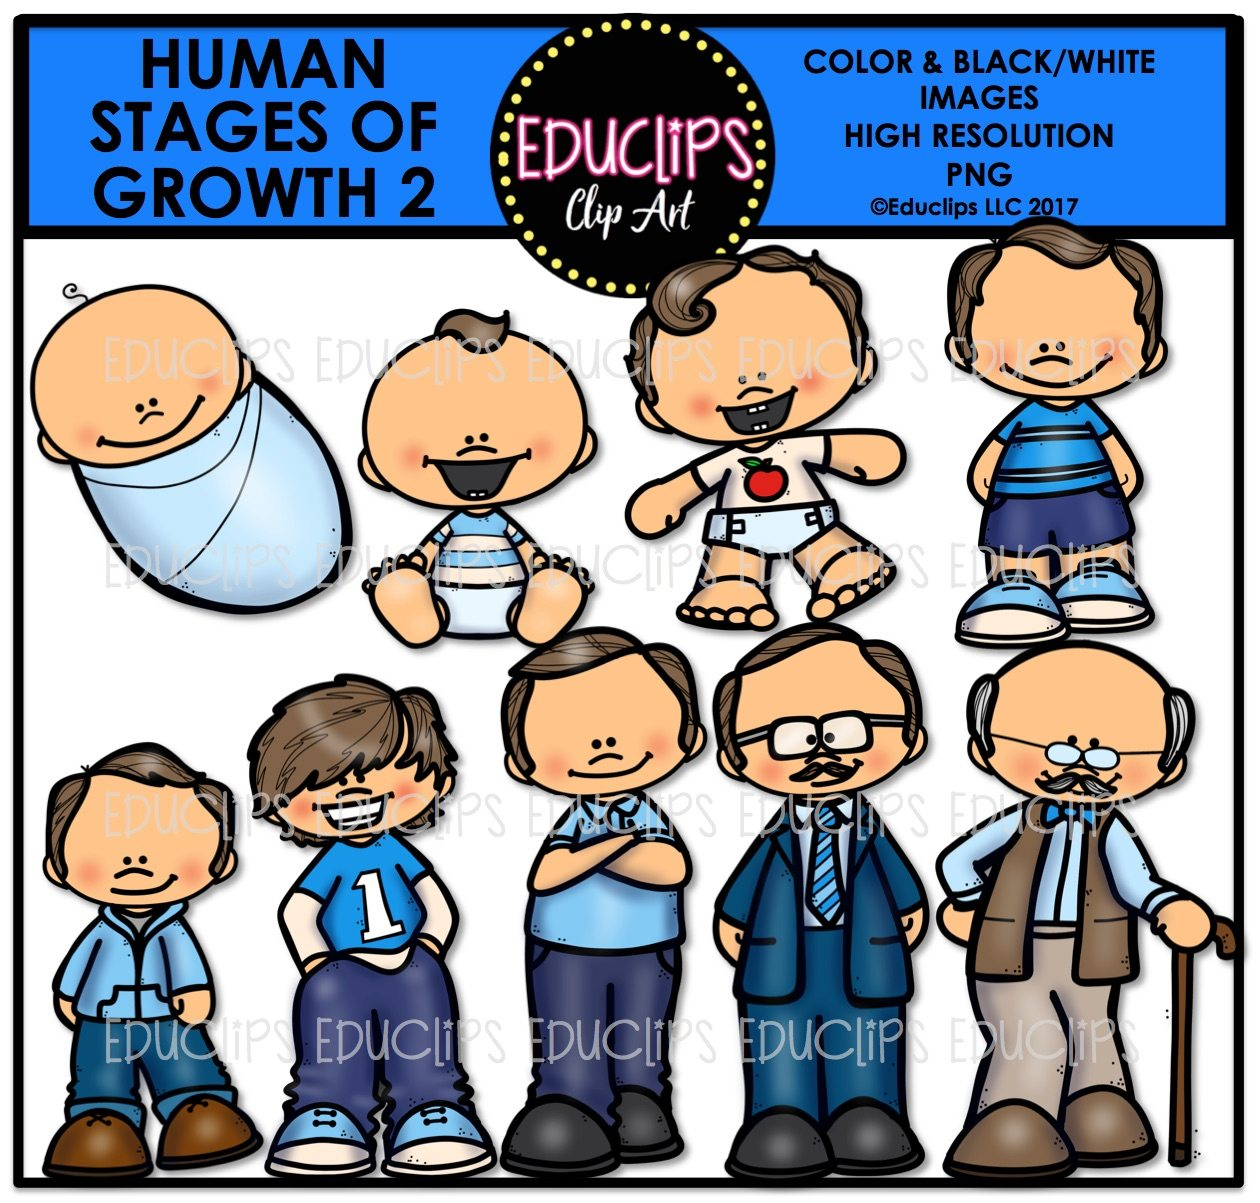 Human Stages Of Growth 2